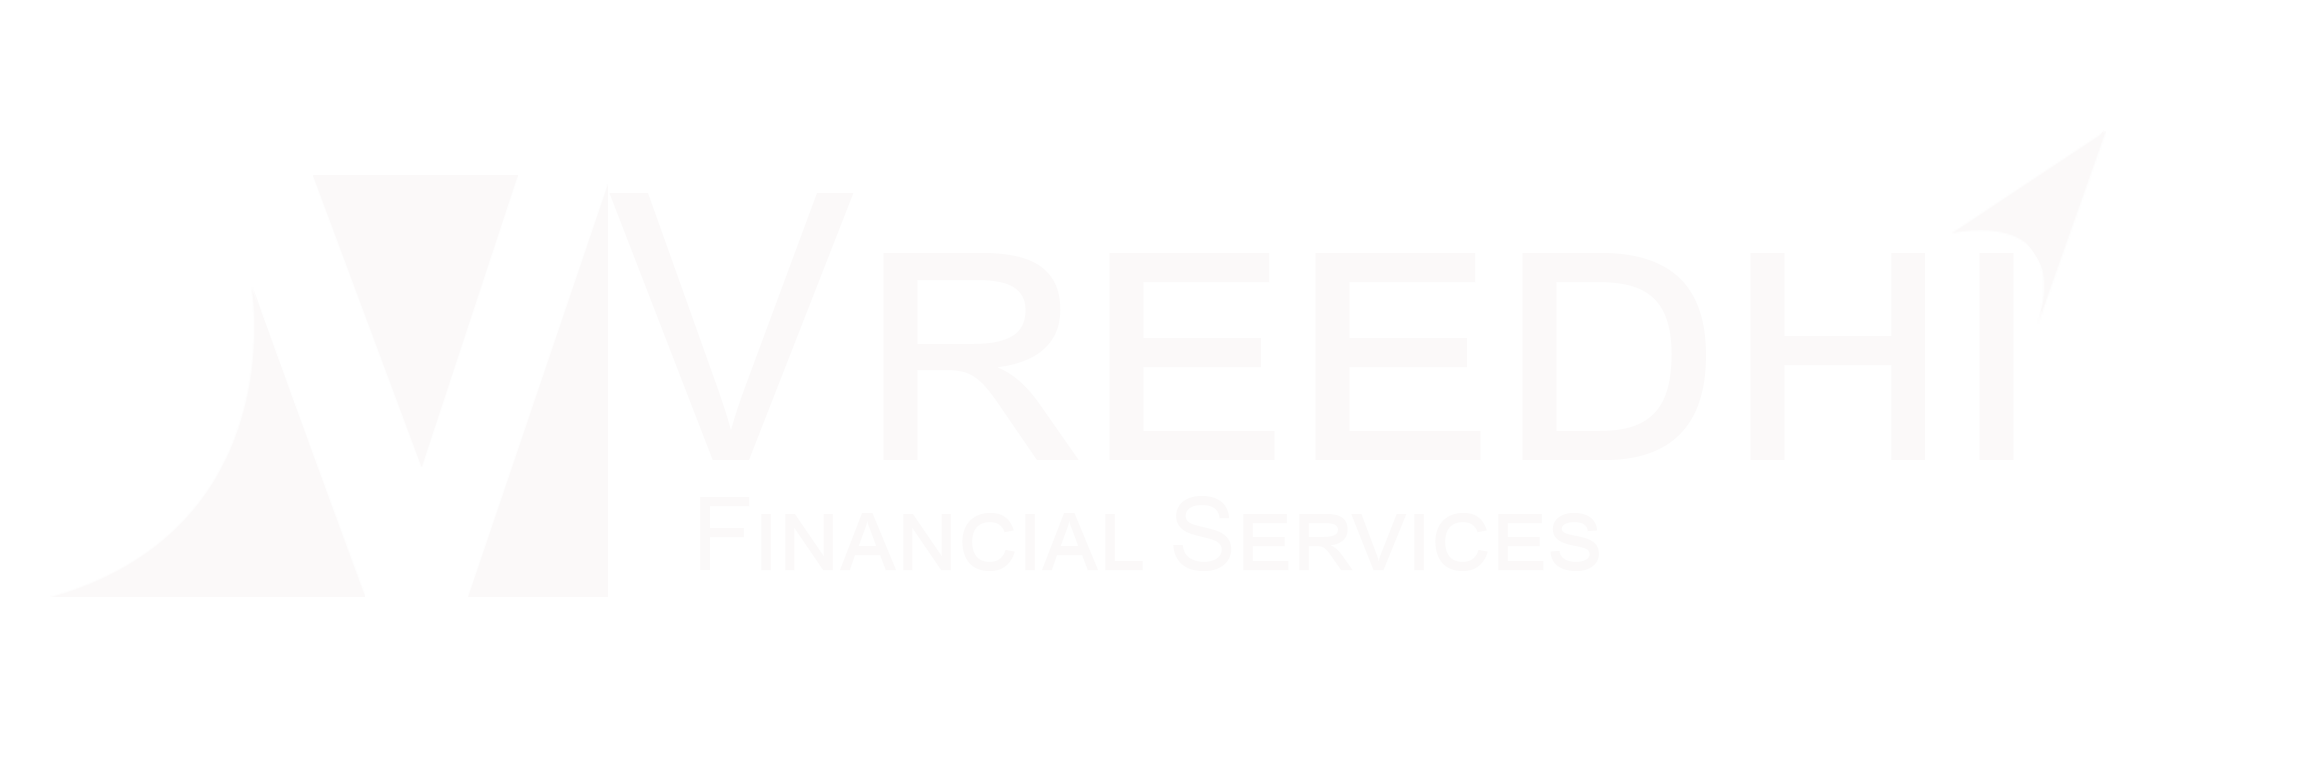 Vreedhi Financial Services Private Limited